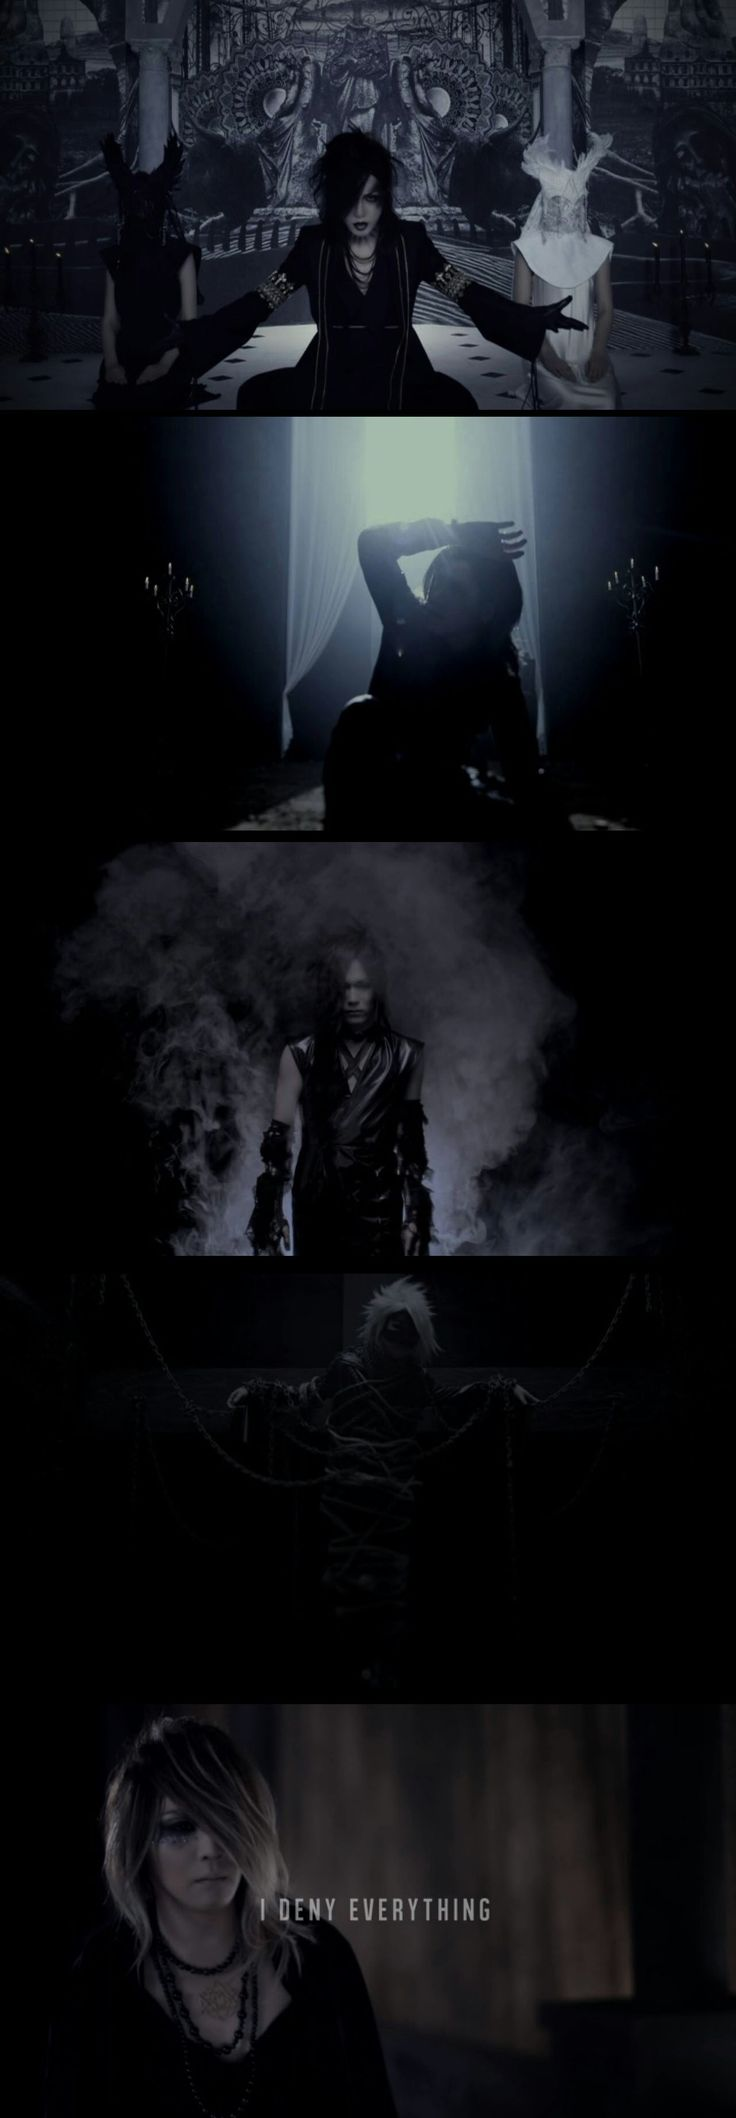 the GazettE - From DOGMA PV